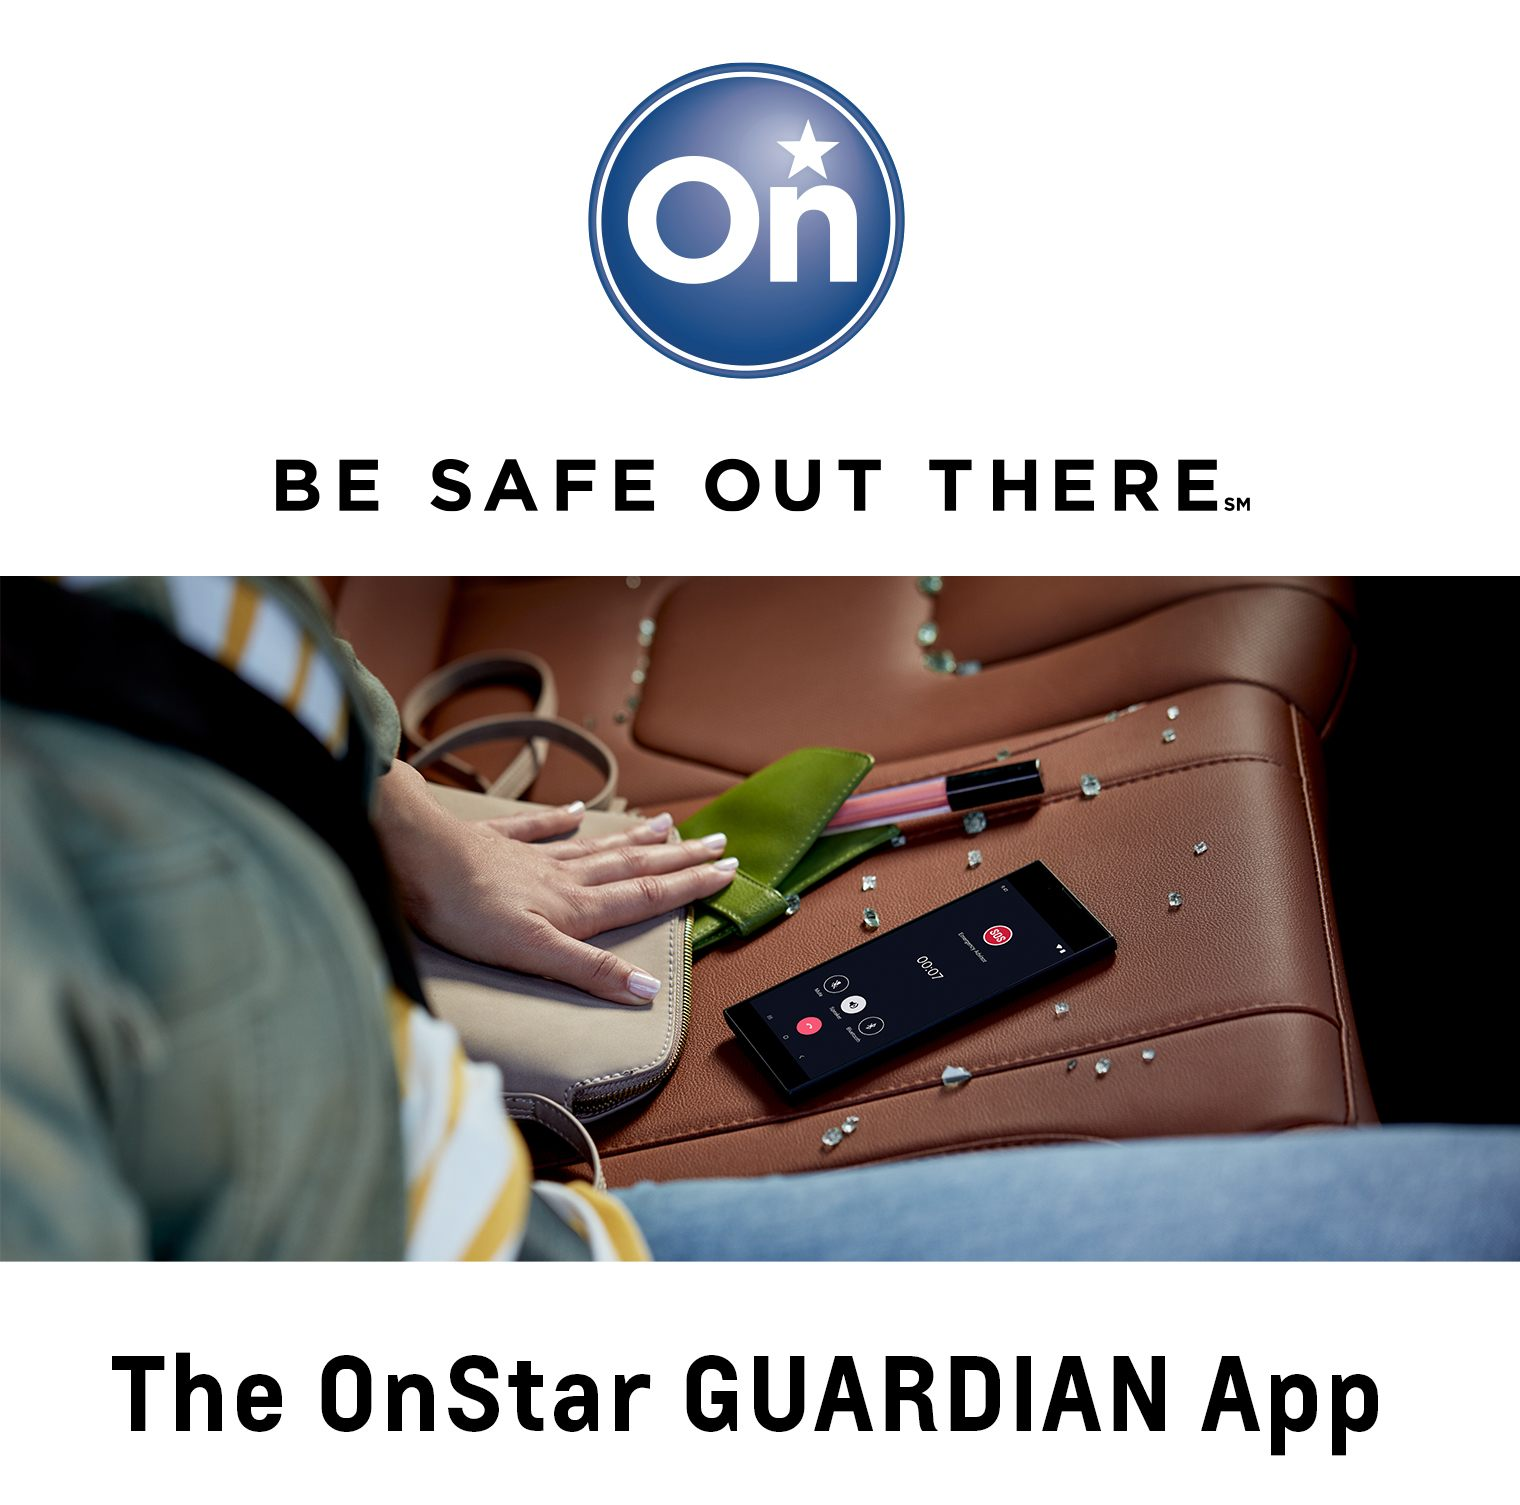 Female hand touching the backseat of a car covered in shards of glass and an iPhone displaying the OnStar app